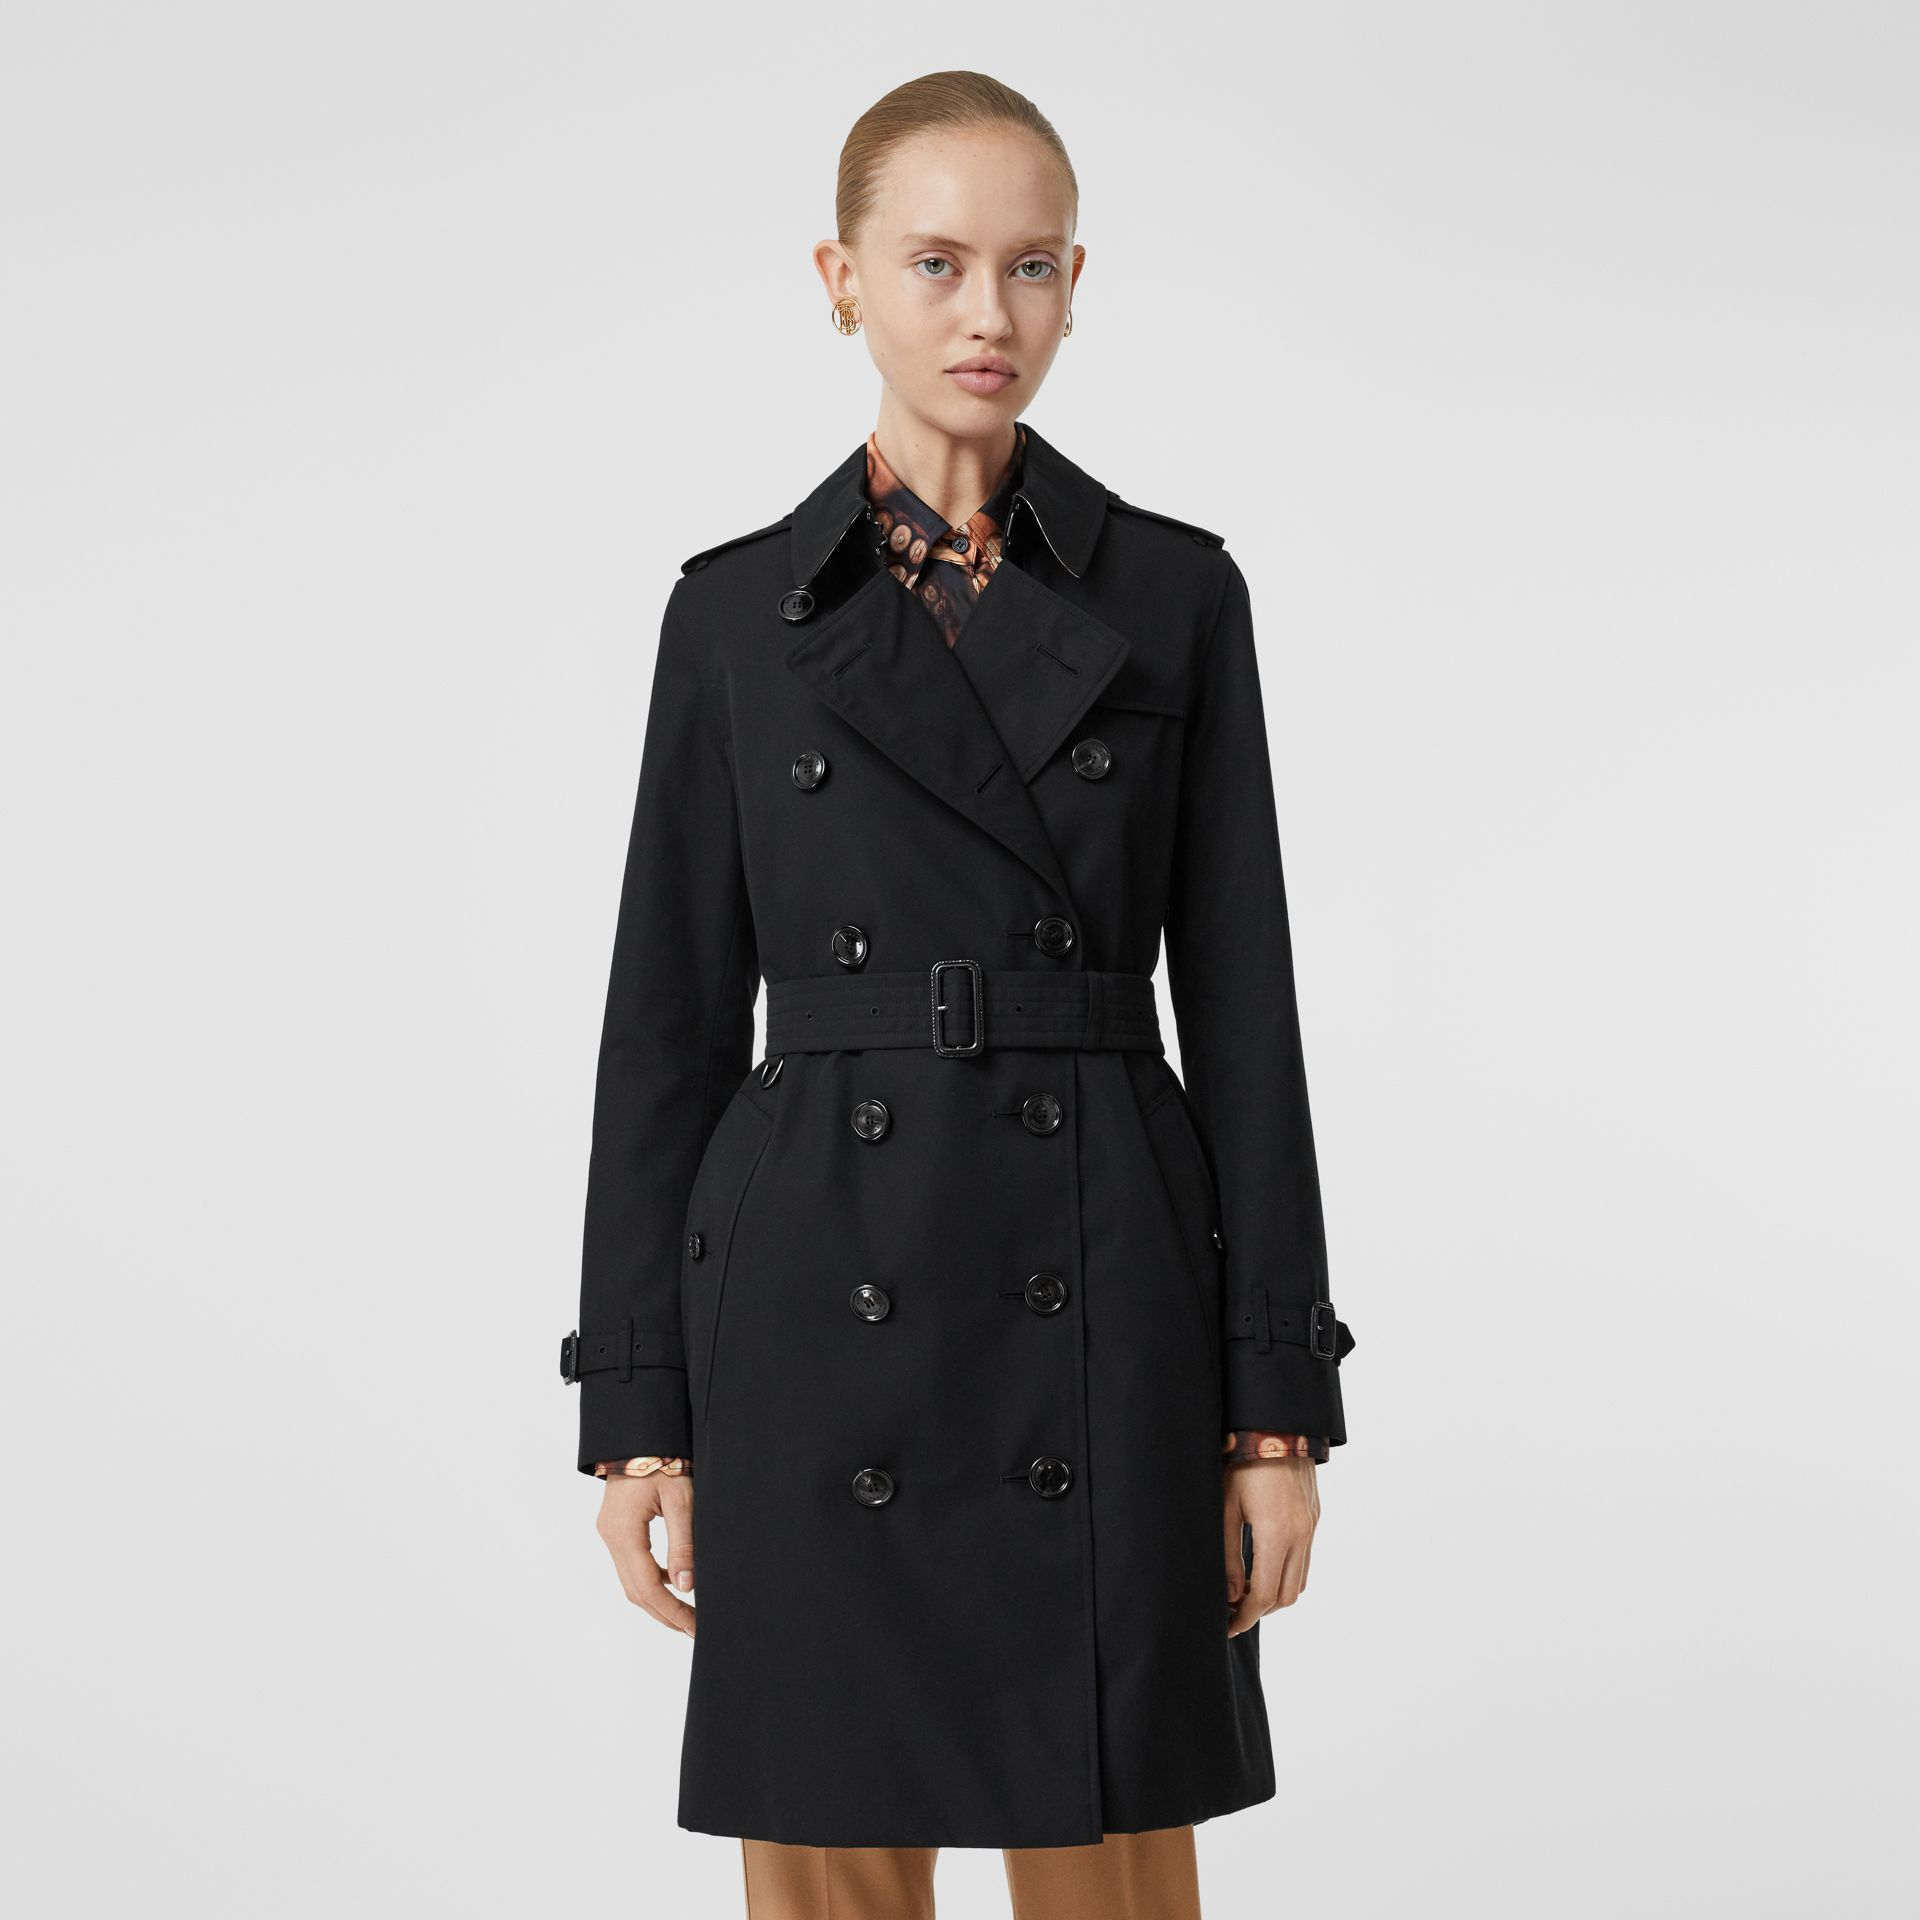 Kensington Fit Cotton Gabardine Trench Coat in Black - Women | Burberry - gallery image 7